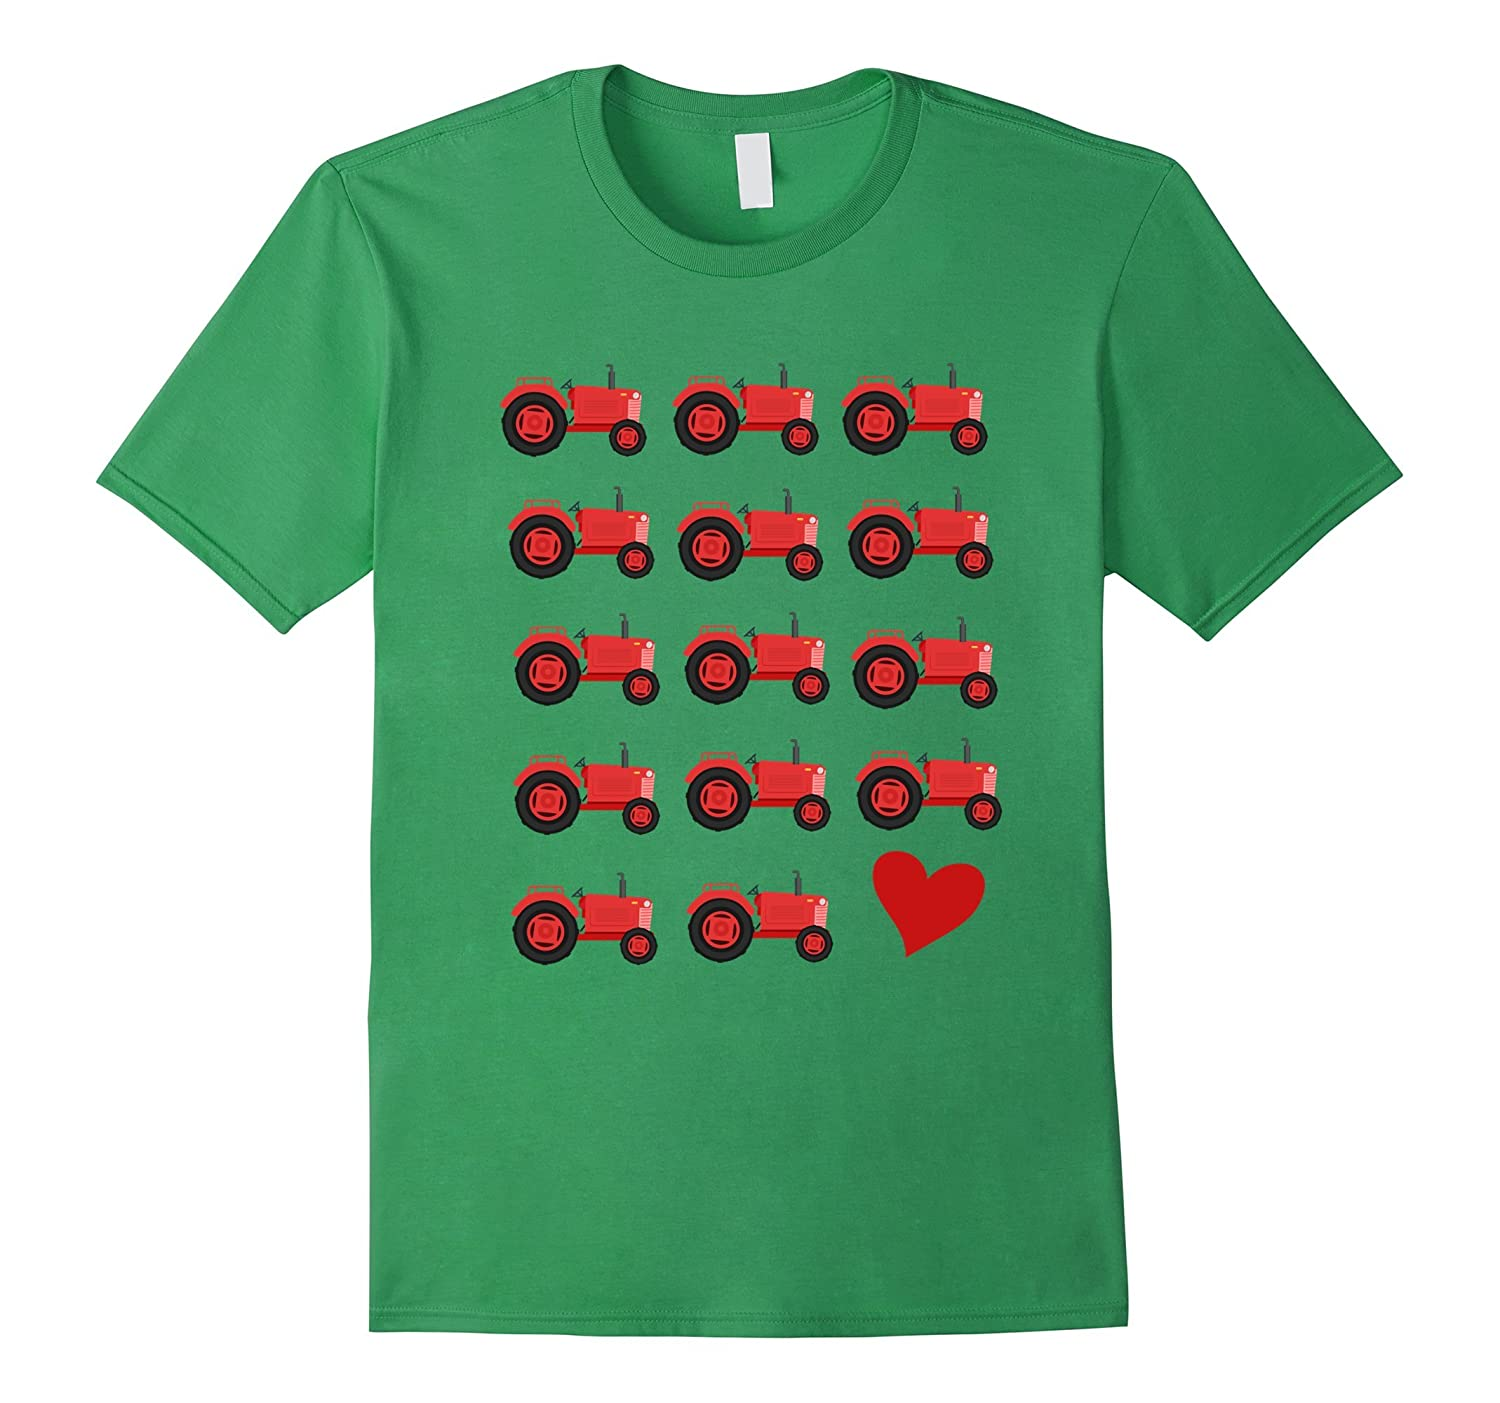 f7665d372 Boys' I Love Red Tractors T-Shirt For Toddlers Kids Farmers-gm ...